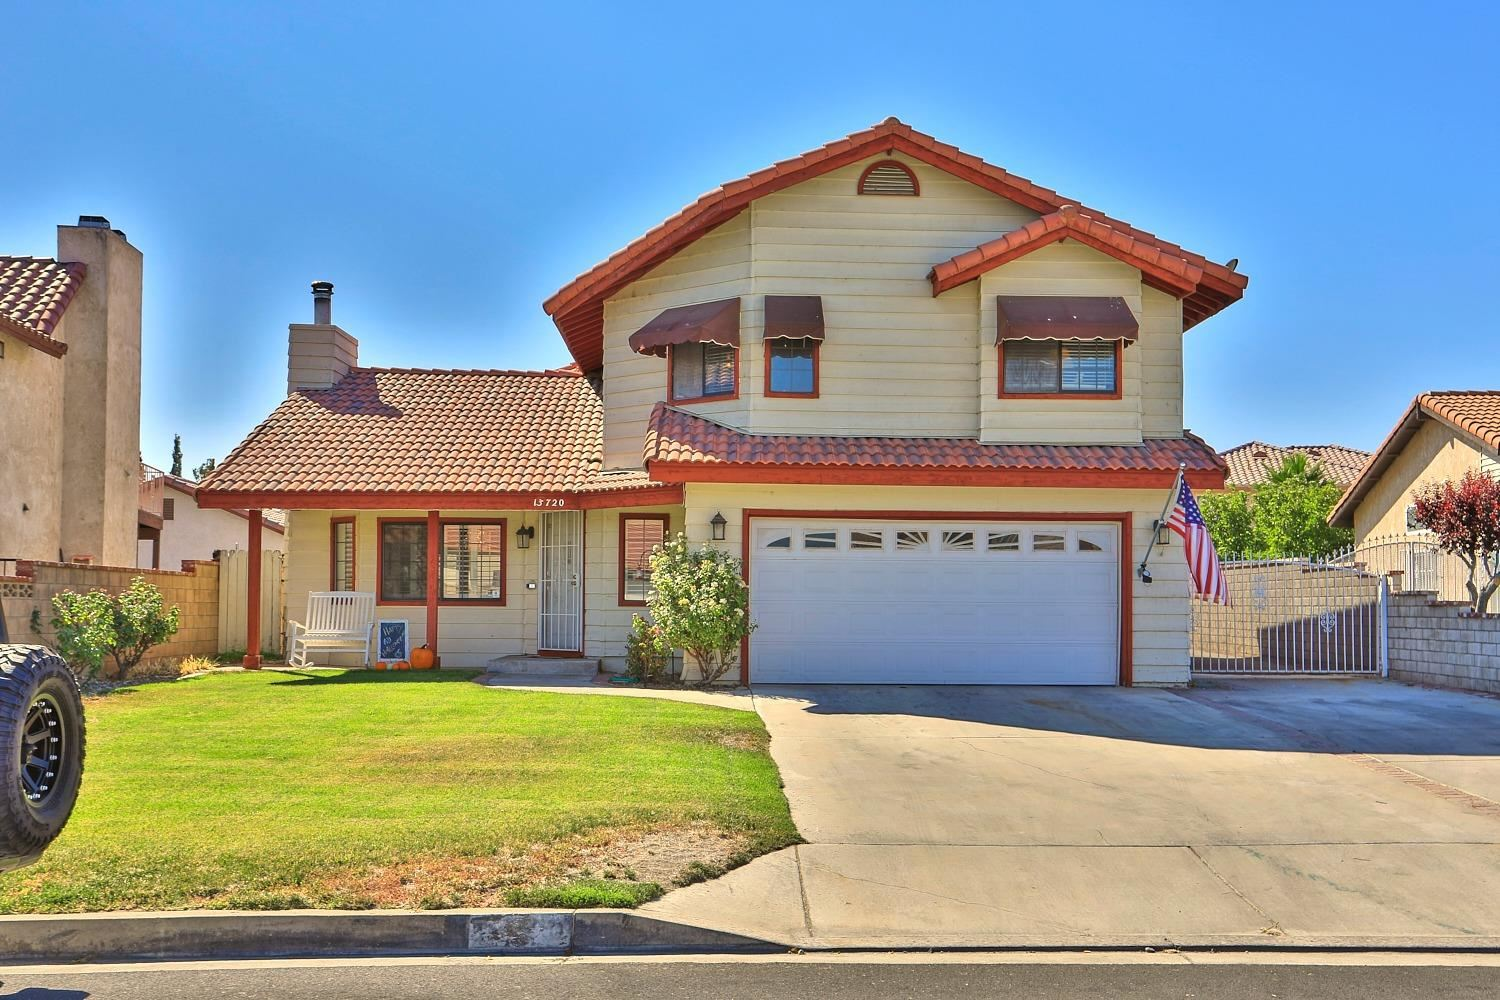 13720 Driftwood Drive, Victorville, CA 92395 - MLS#: 529096